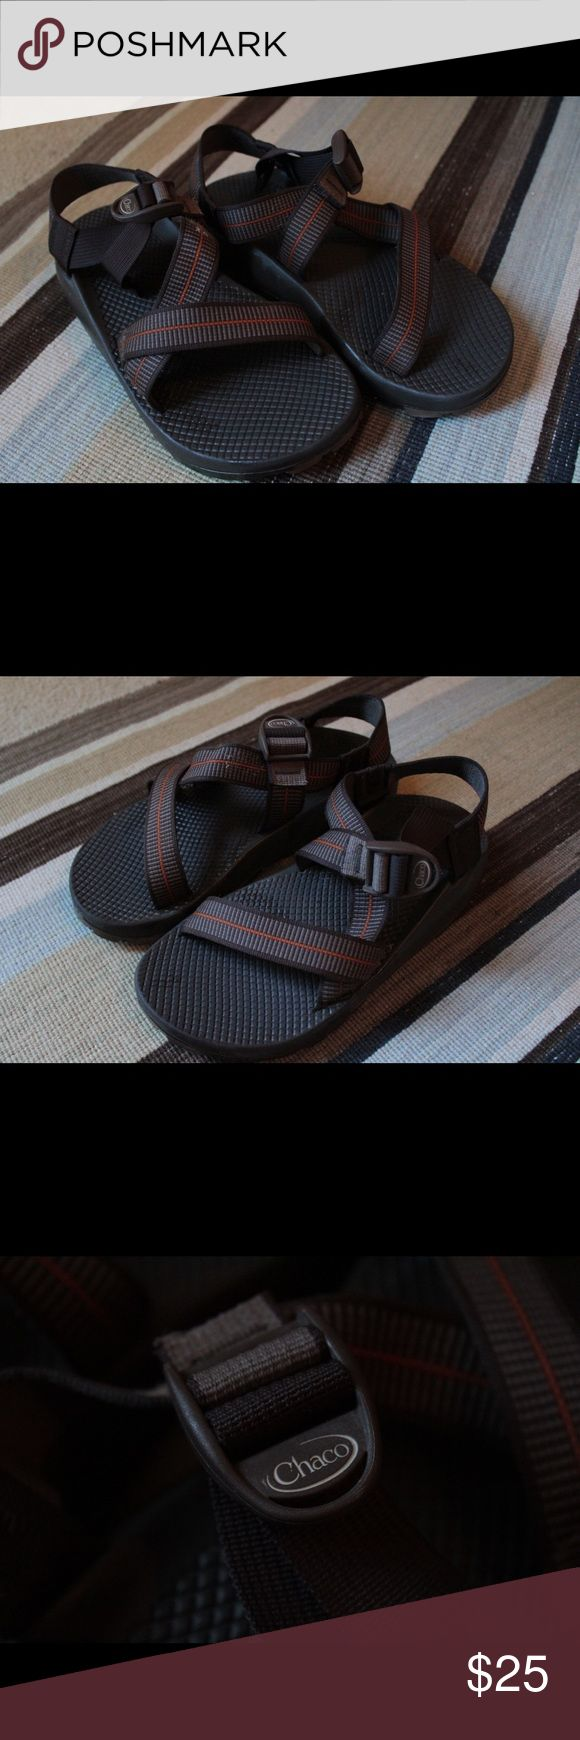 Men's Chacos SZ 7 Men's Chacos SZ 7 Vibram tread. The one shoe is SPLITTING a little bit on the left shoe, that's why I'm selling them so cheap, other than that the soles, tread and straps are great! Chaco Shoes Sandals & Flip-Flops